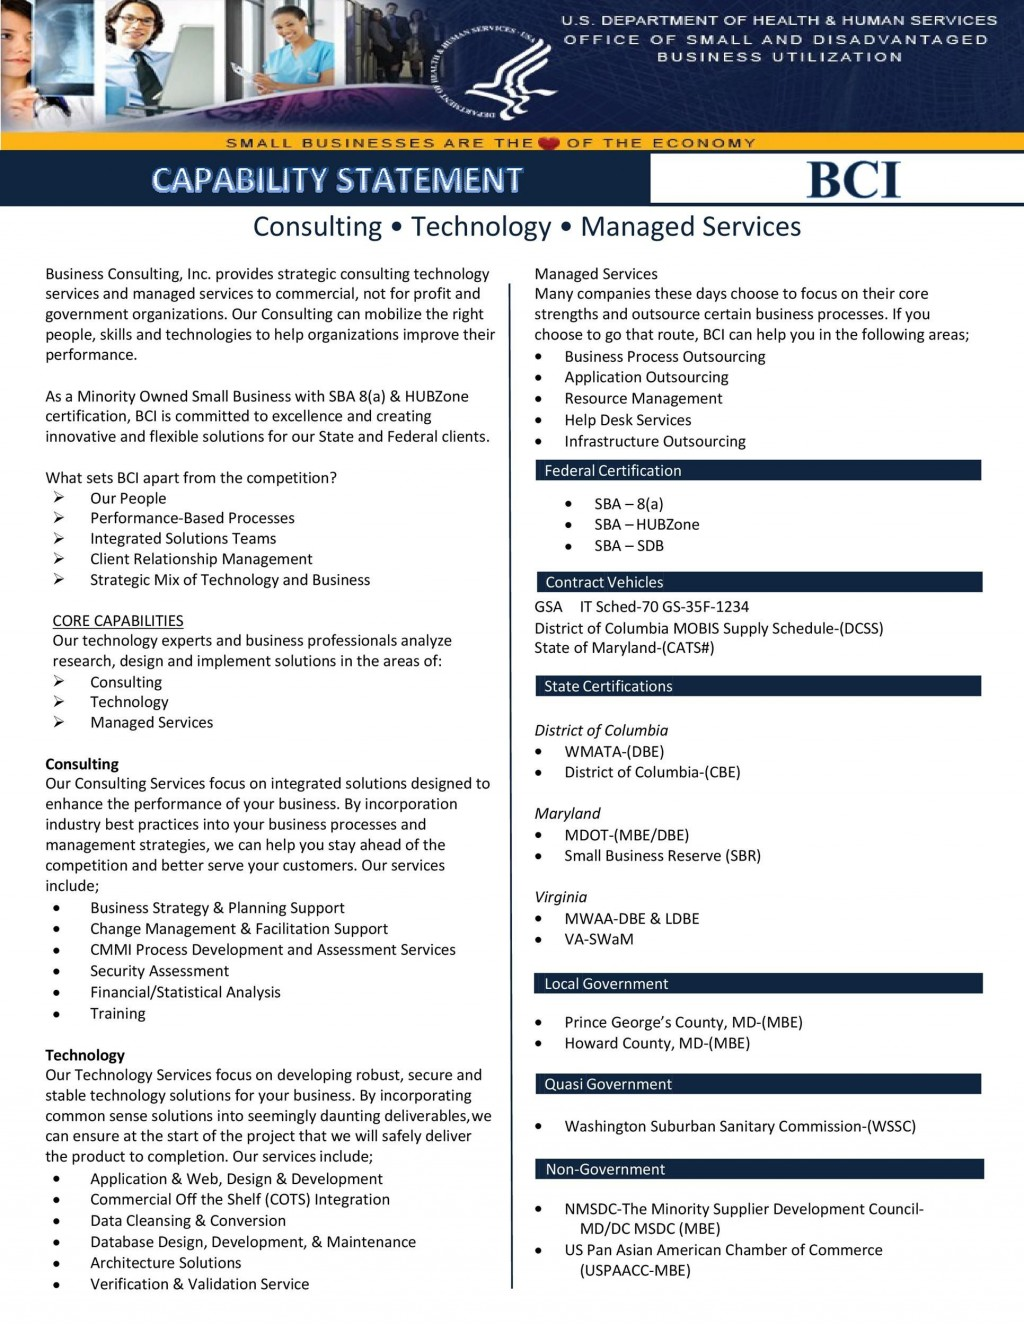 006 Archaicawful Capability Statement Template Free Sample  Word Editable DesignLarge